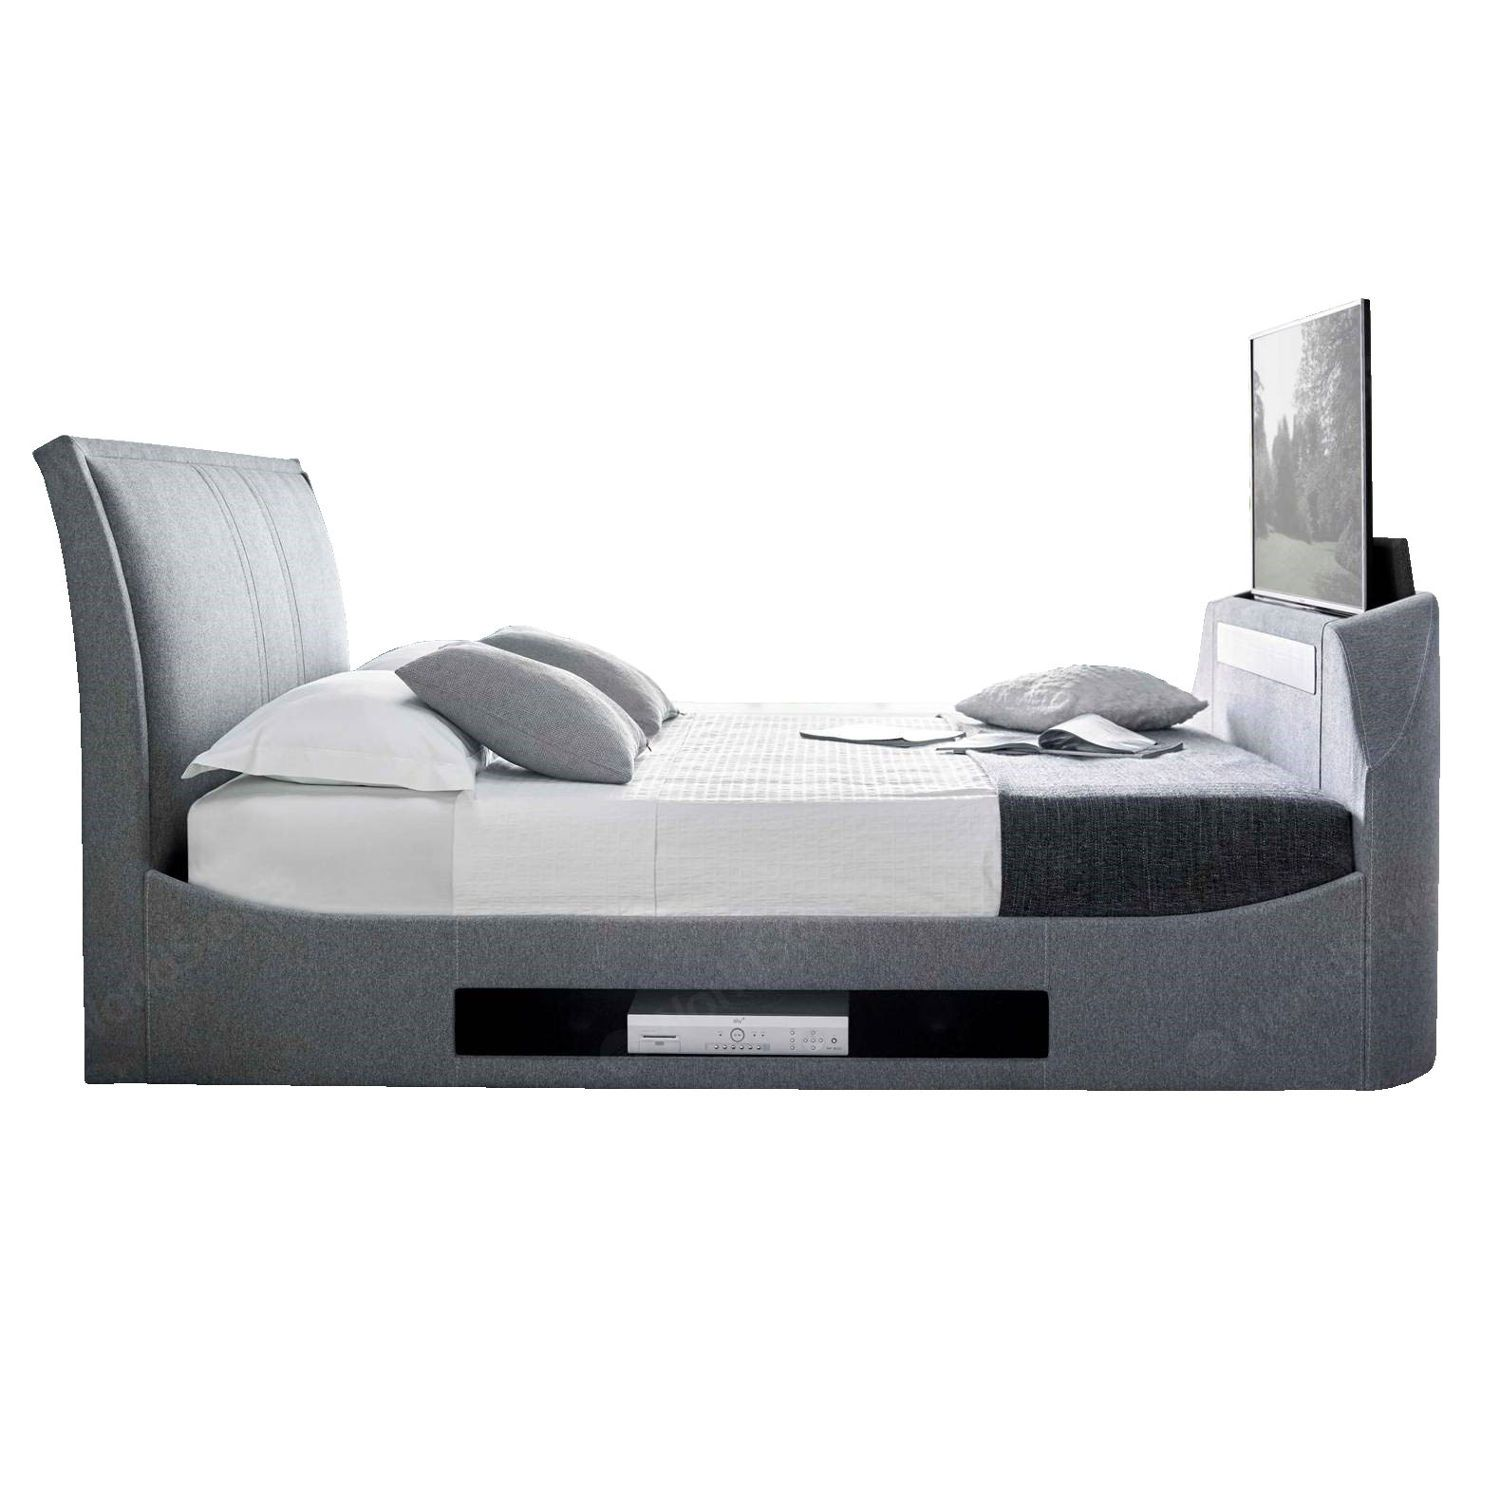 Kaydian Maximus Adjustable TV Bed | Next Day   Select Day Delivery